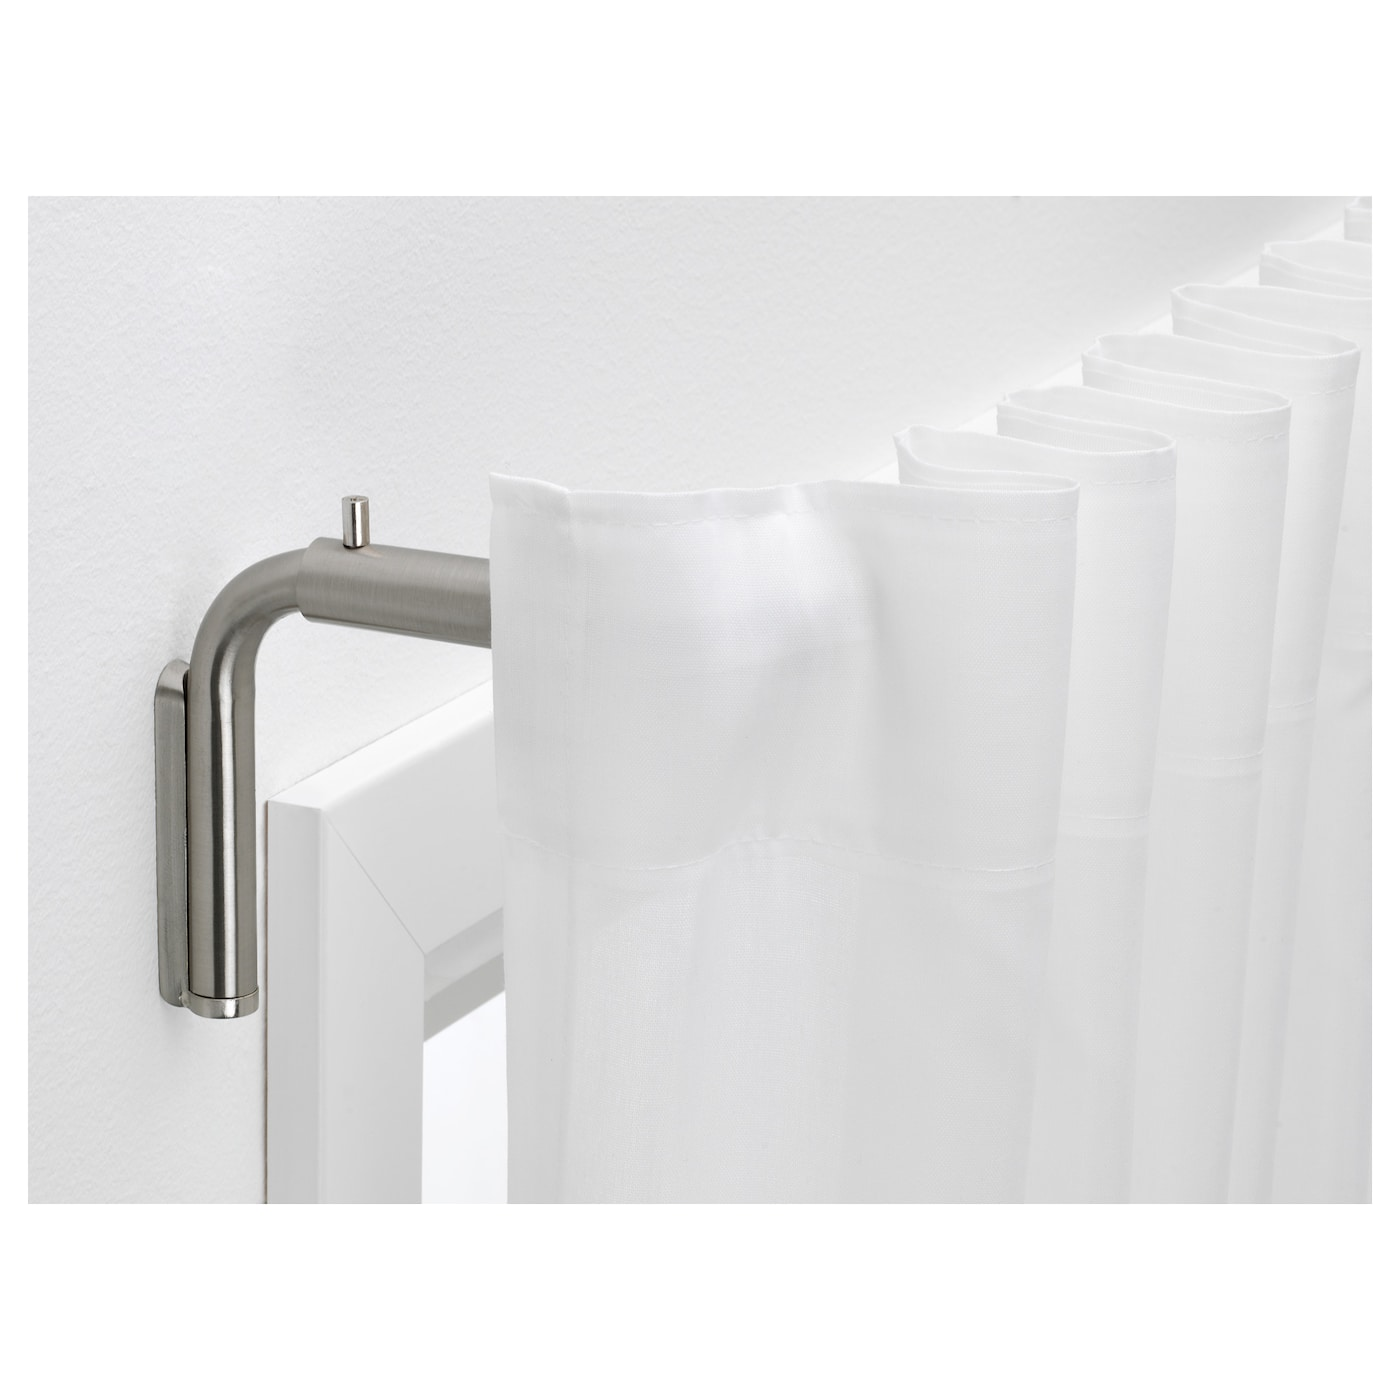 ikea tidpunkt curtain rod set you can adjust the length of the curtain